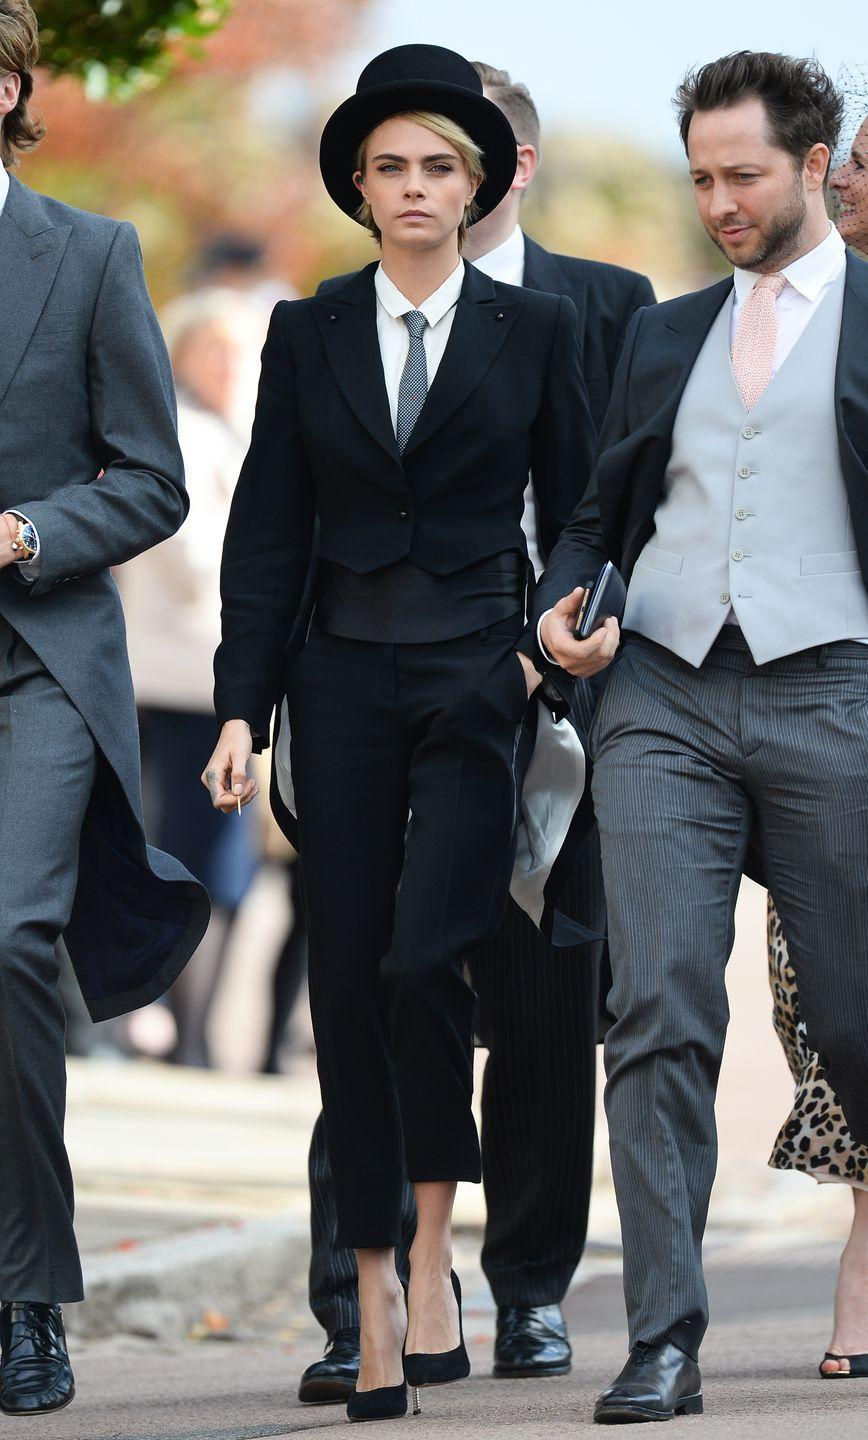 <p>As demonstrated in this gallery alone, we can say with certainty that Cara knows how to wear a suit. Her tailored black tails and top hat stood out from the crowd at Eugenie's star-studded nuptials. </p>